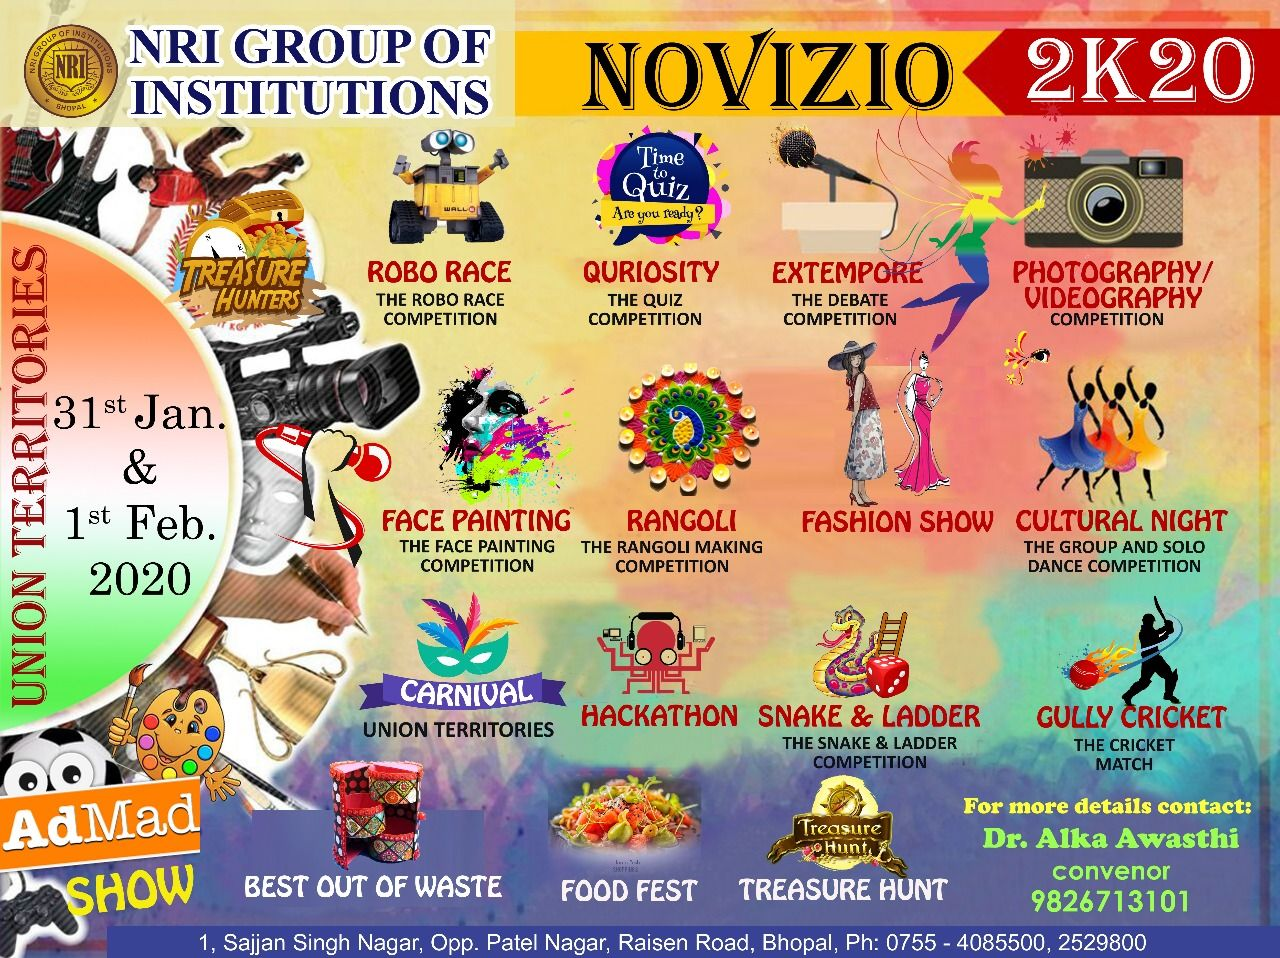 Novizio 2k20 The Annual Fest Nri Group Of Institutions In 2020